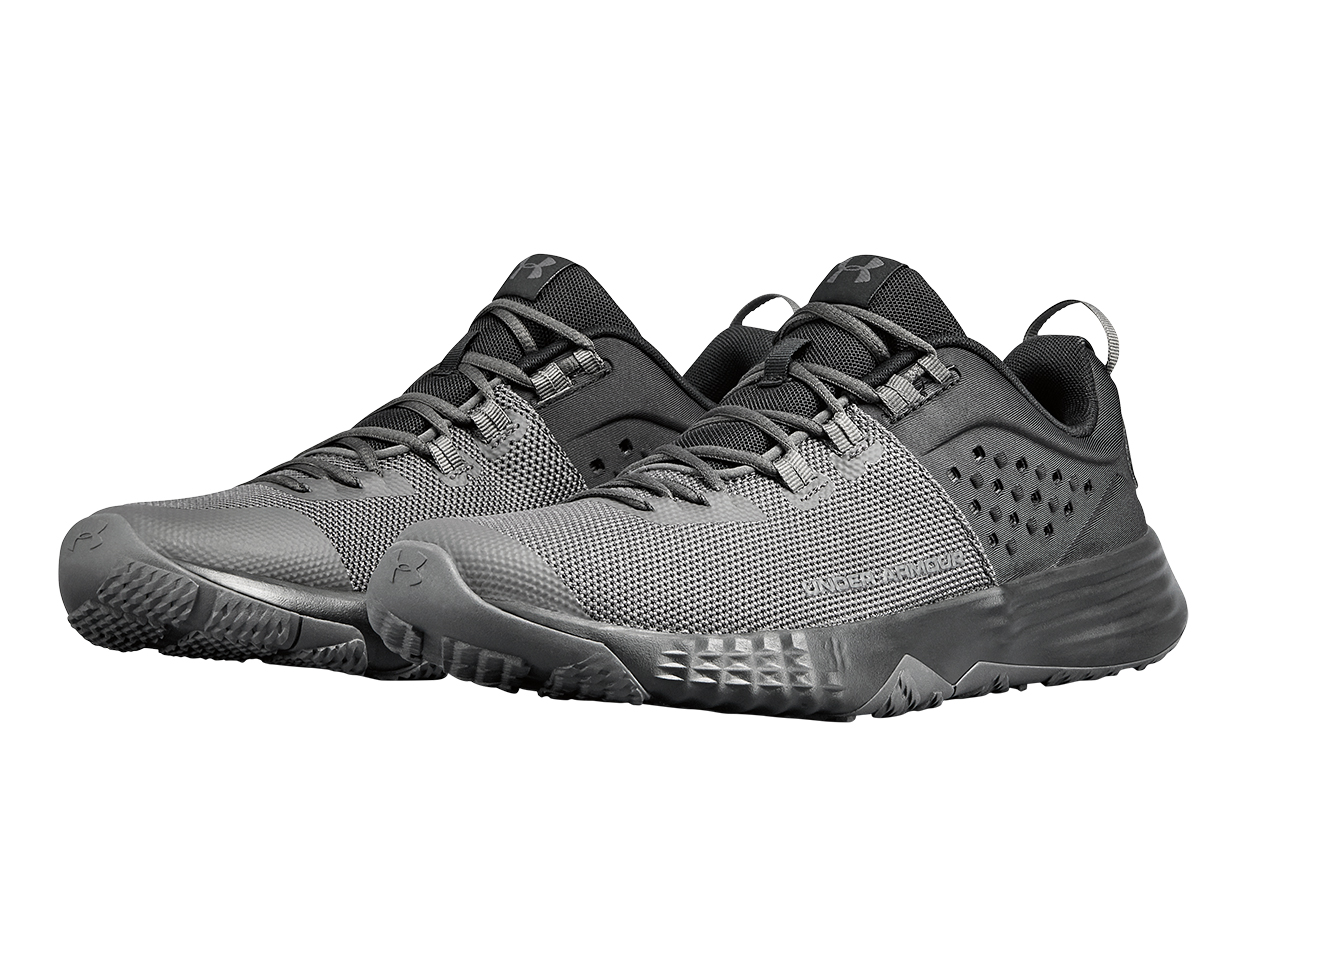 best shoes for weightlifting and cardio